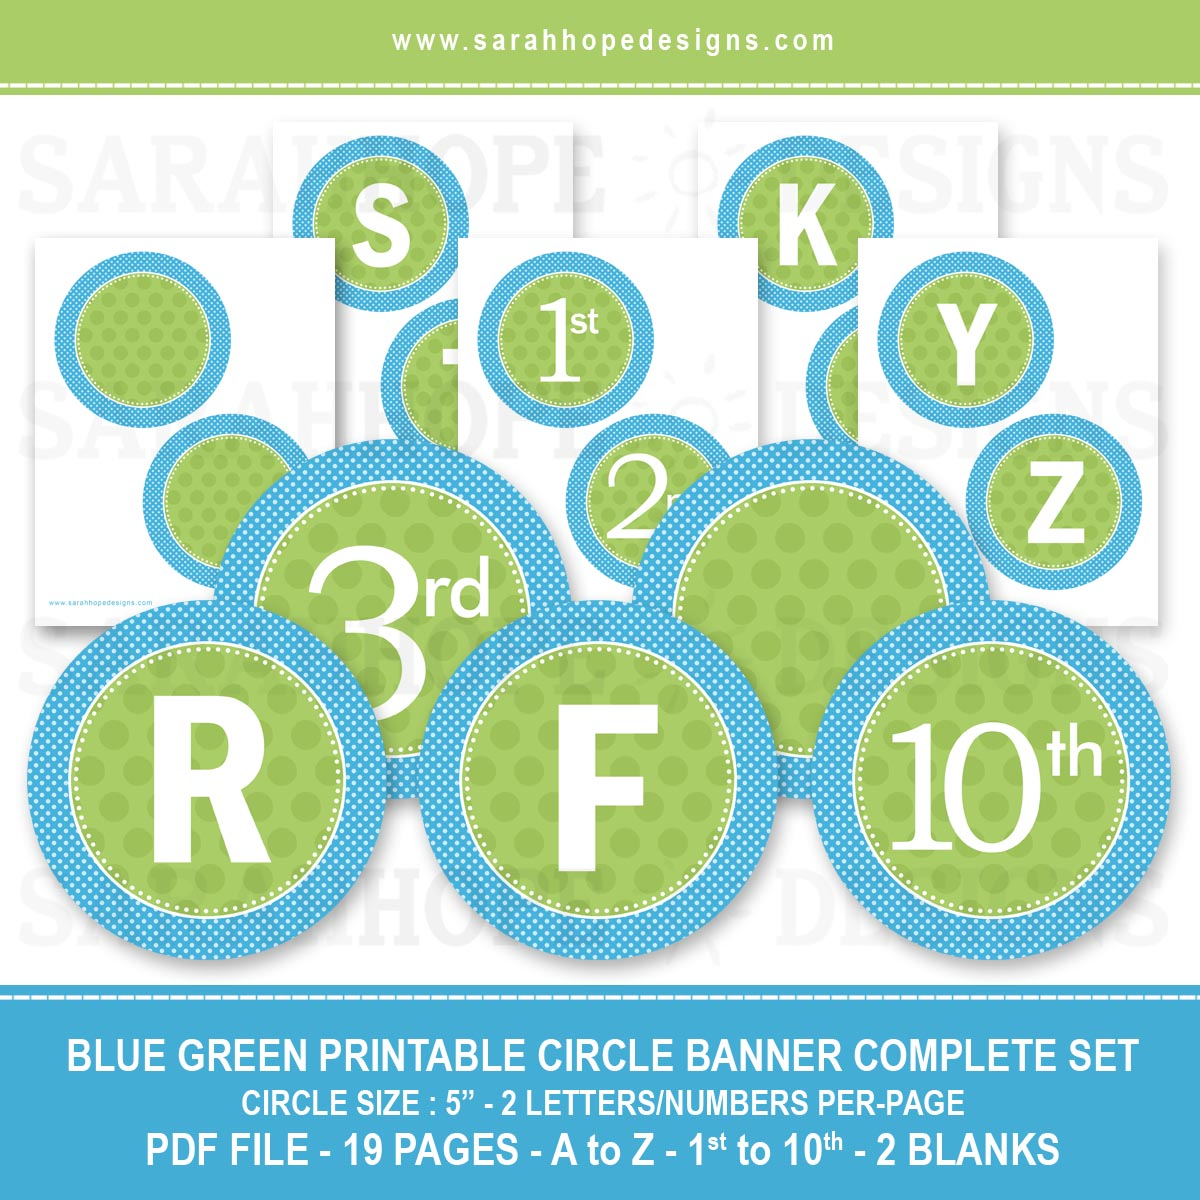 graphic about Printable Letters for Banner called Spell Out Nearly anything With these types of Totally free Alphabet Circle Banners